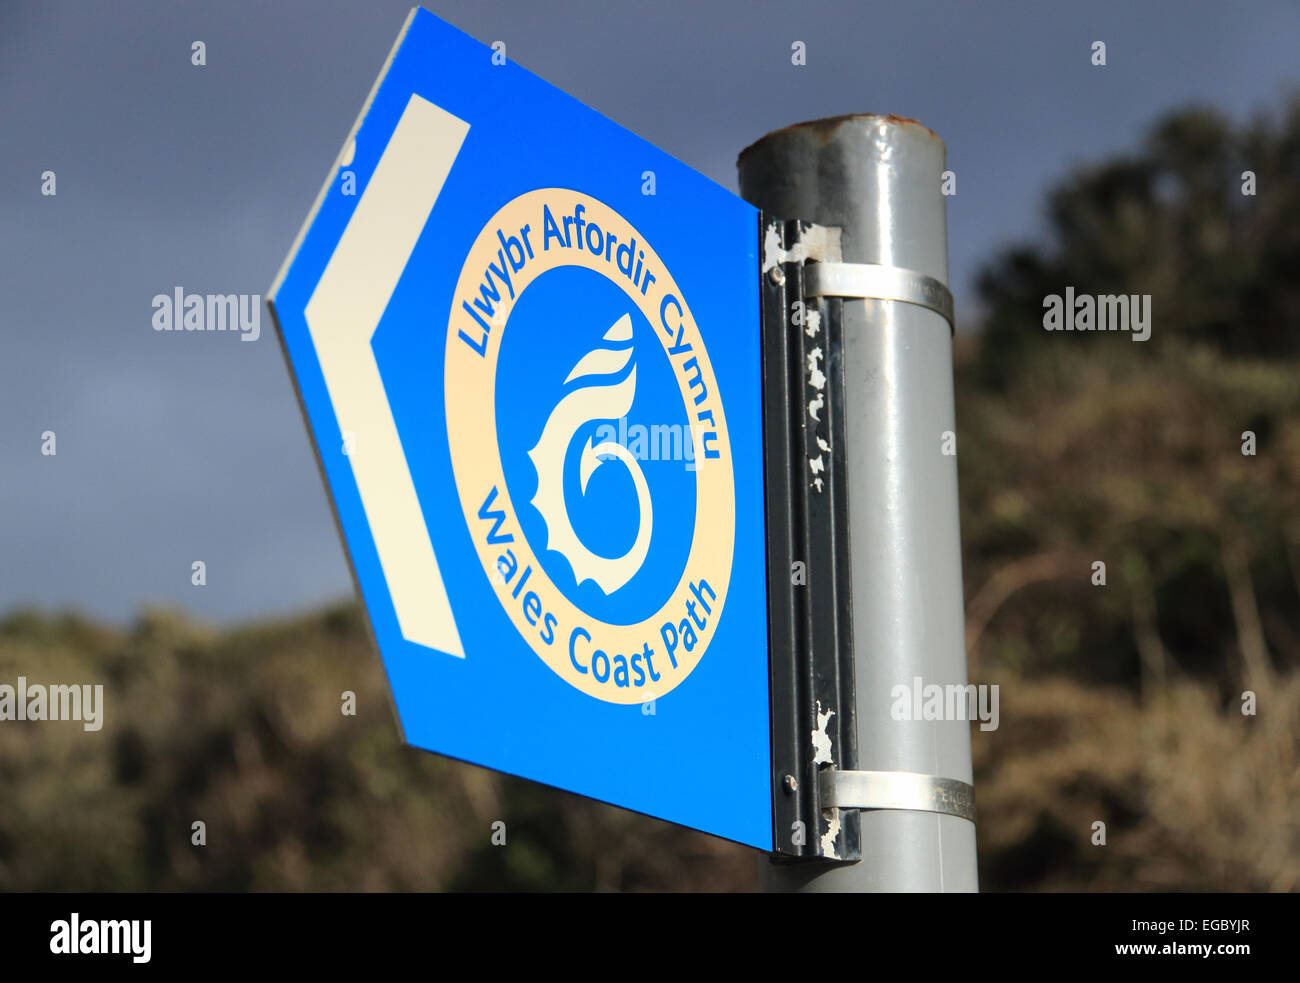 Wales Coast Path blue direction sign - Stock Image